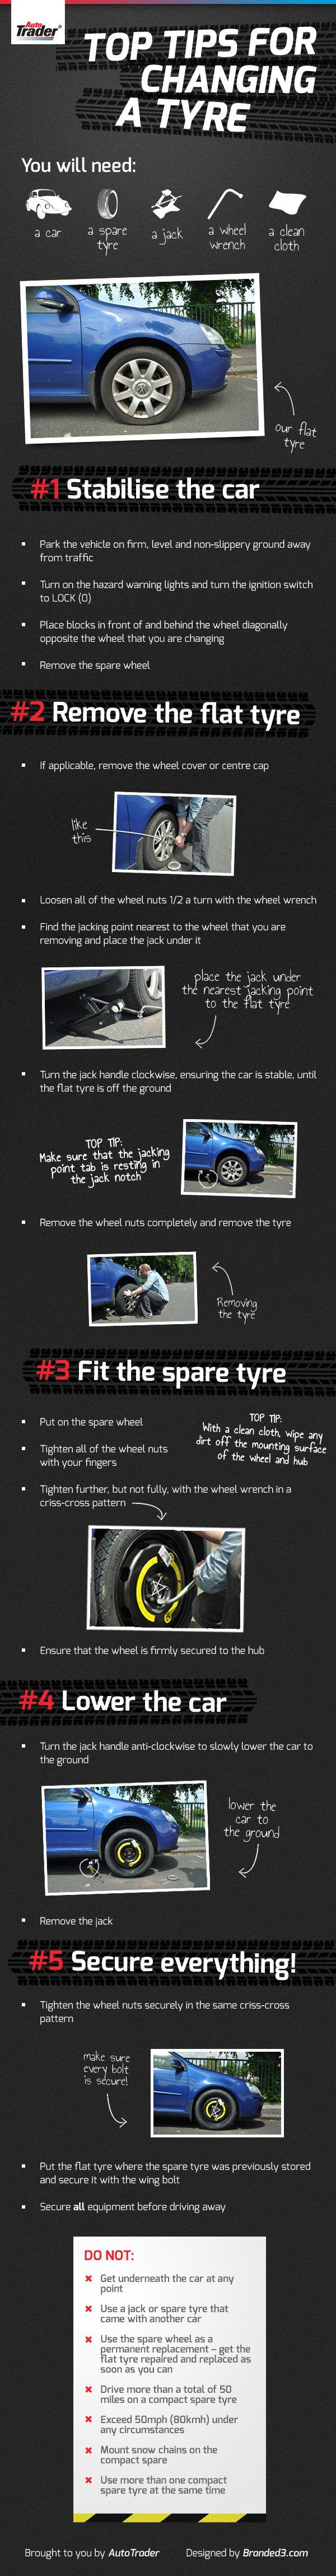 How to Change a Flat Tyre on a Car - [Instructographic] by Auto Trader and Branded3.com #cars